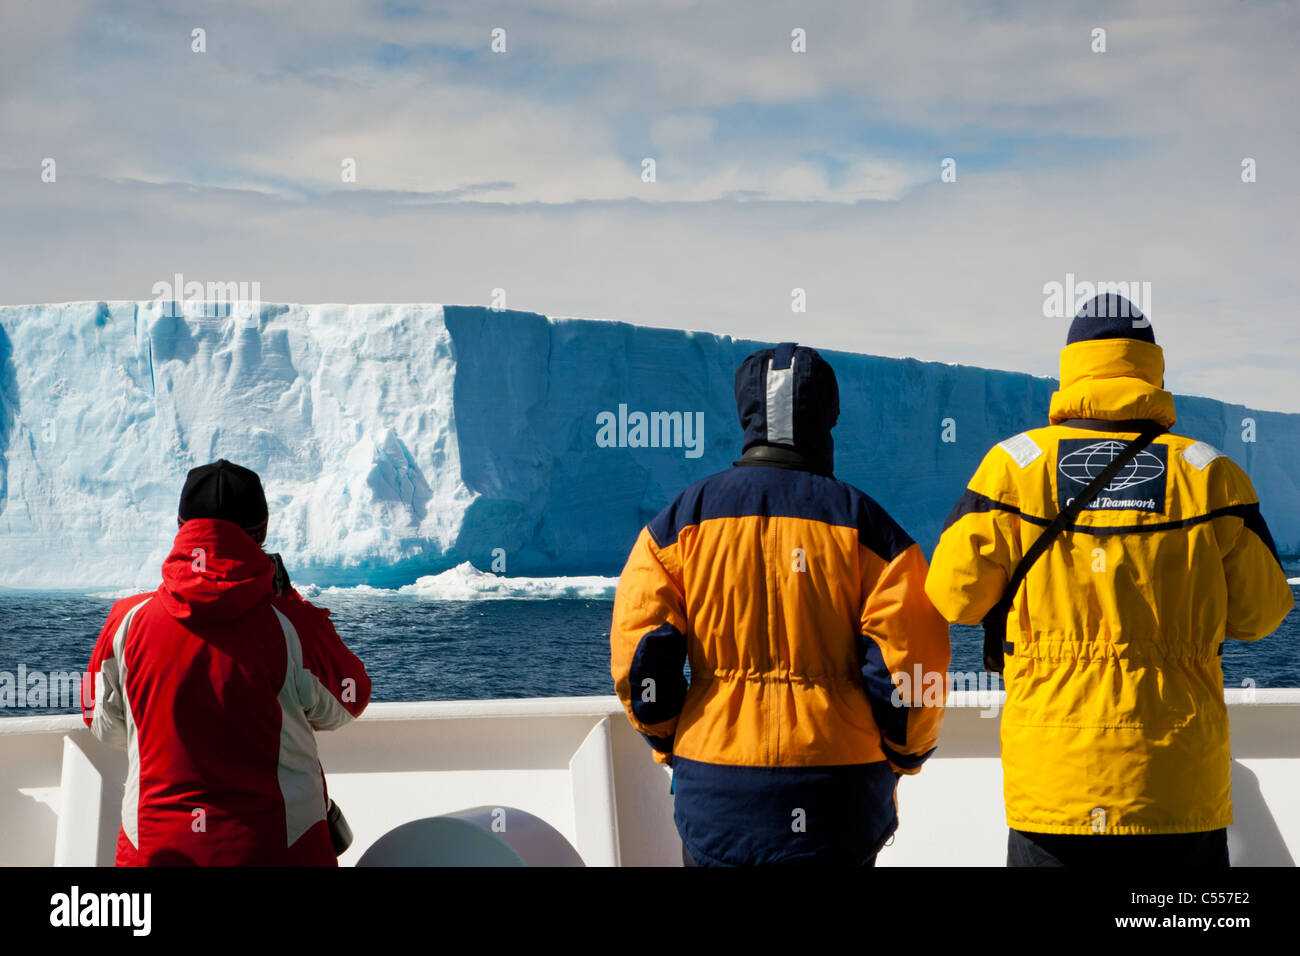 Closeup 3 Antarctic expedition cruise passengers on outside ships deck watch as giant blue iceberg floats by in Stock Photo